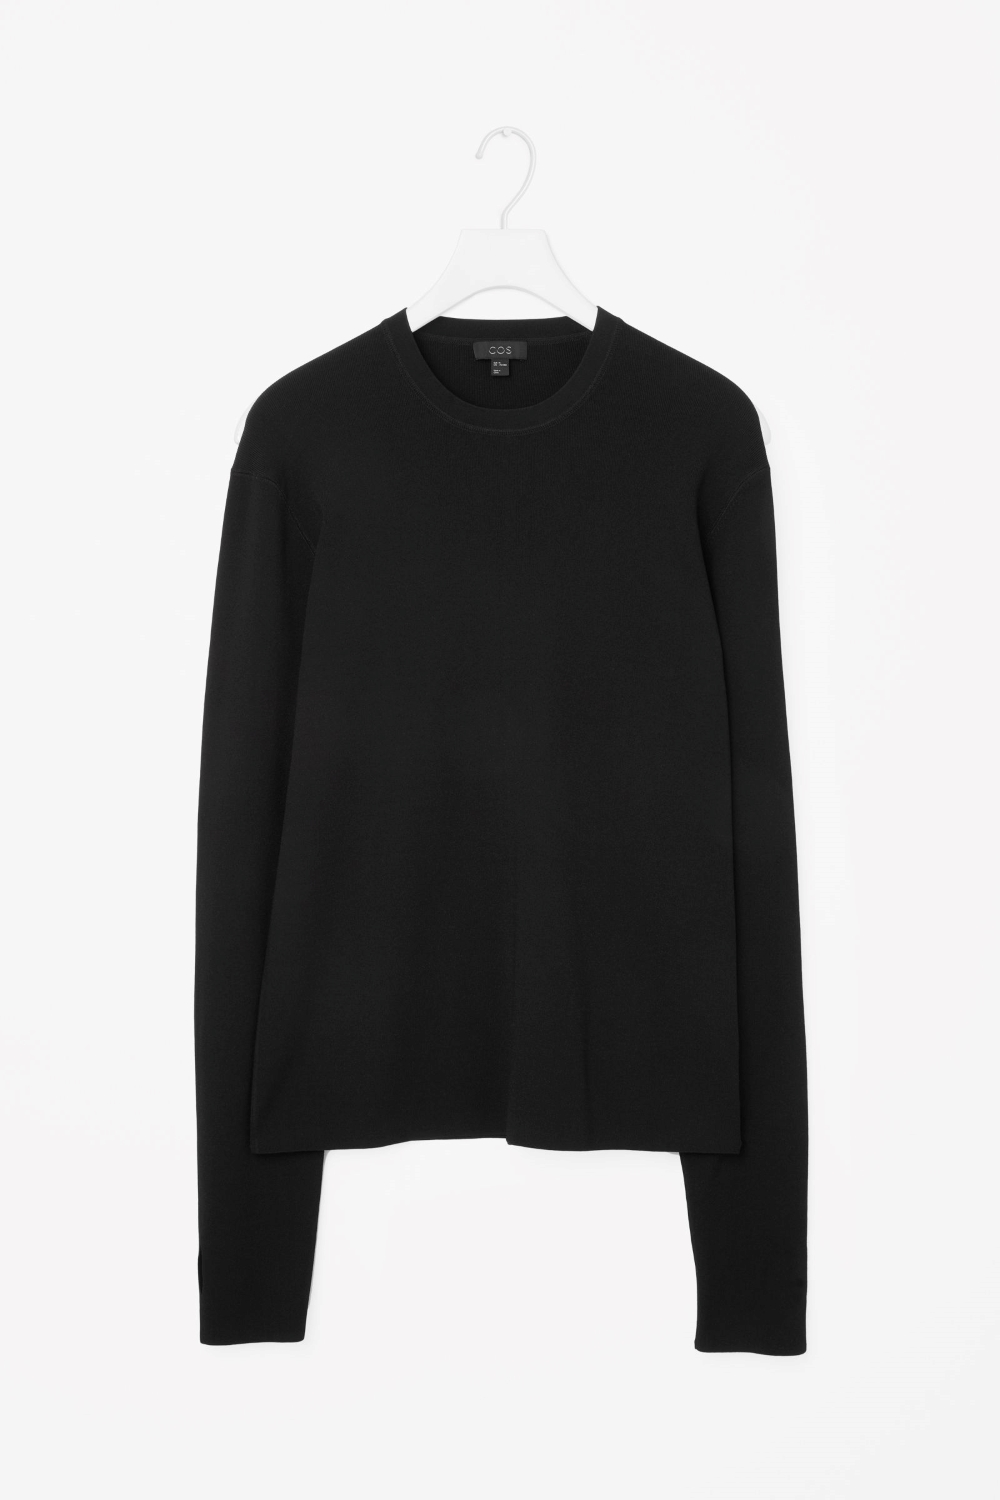 Thumbhole sleeve jumper, £59 (cosstores.com)